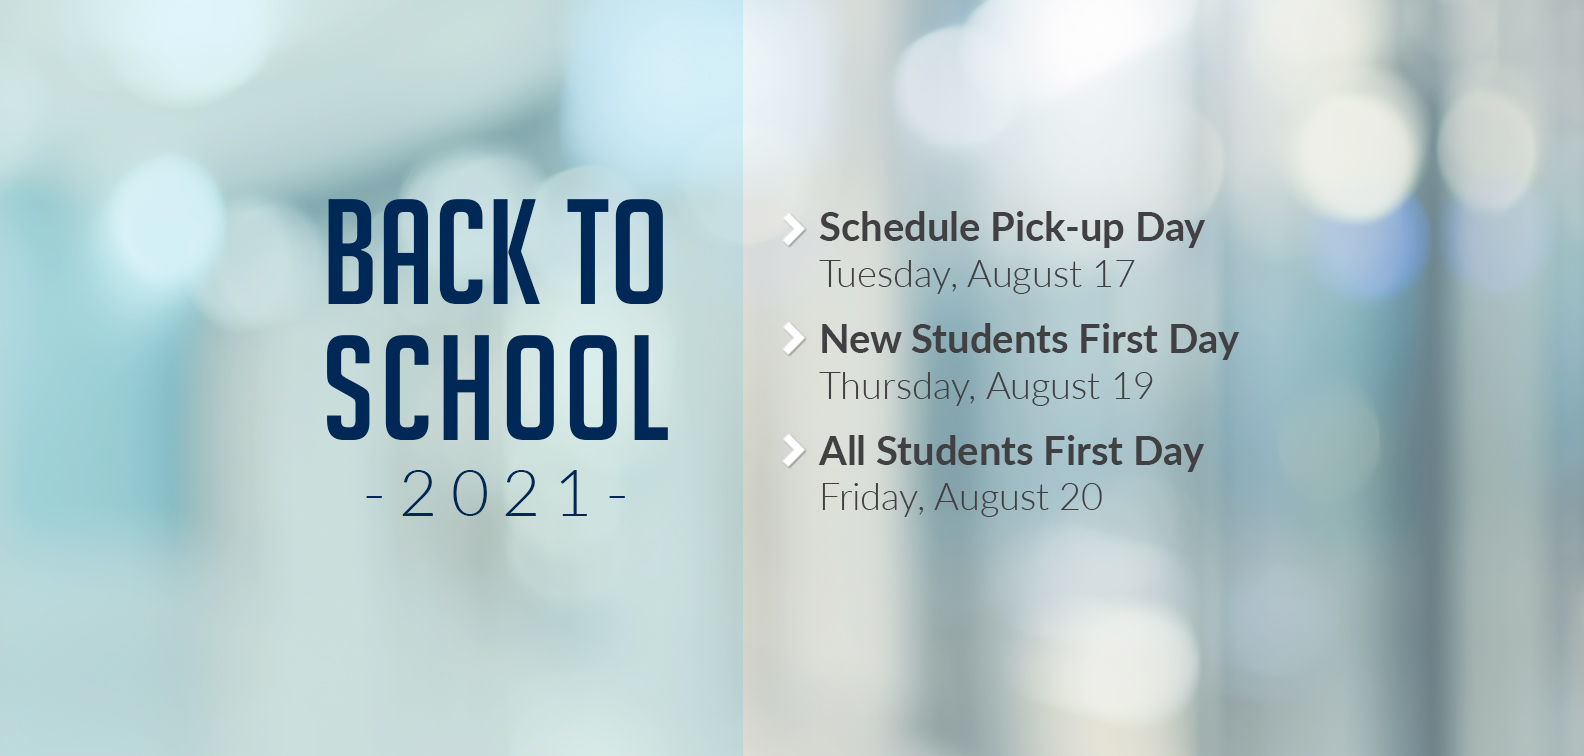 Back to School 2021 Dates